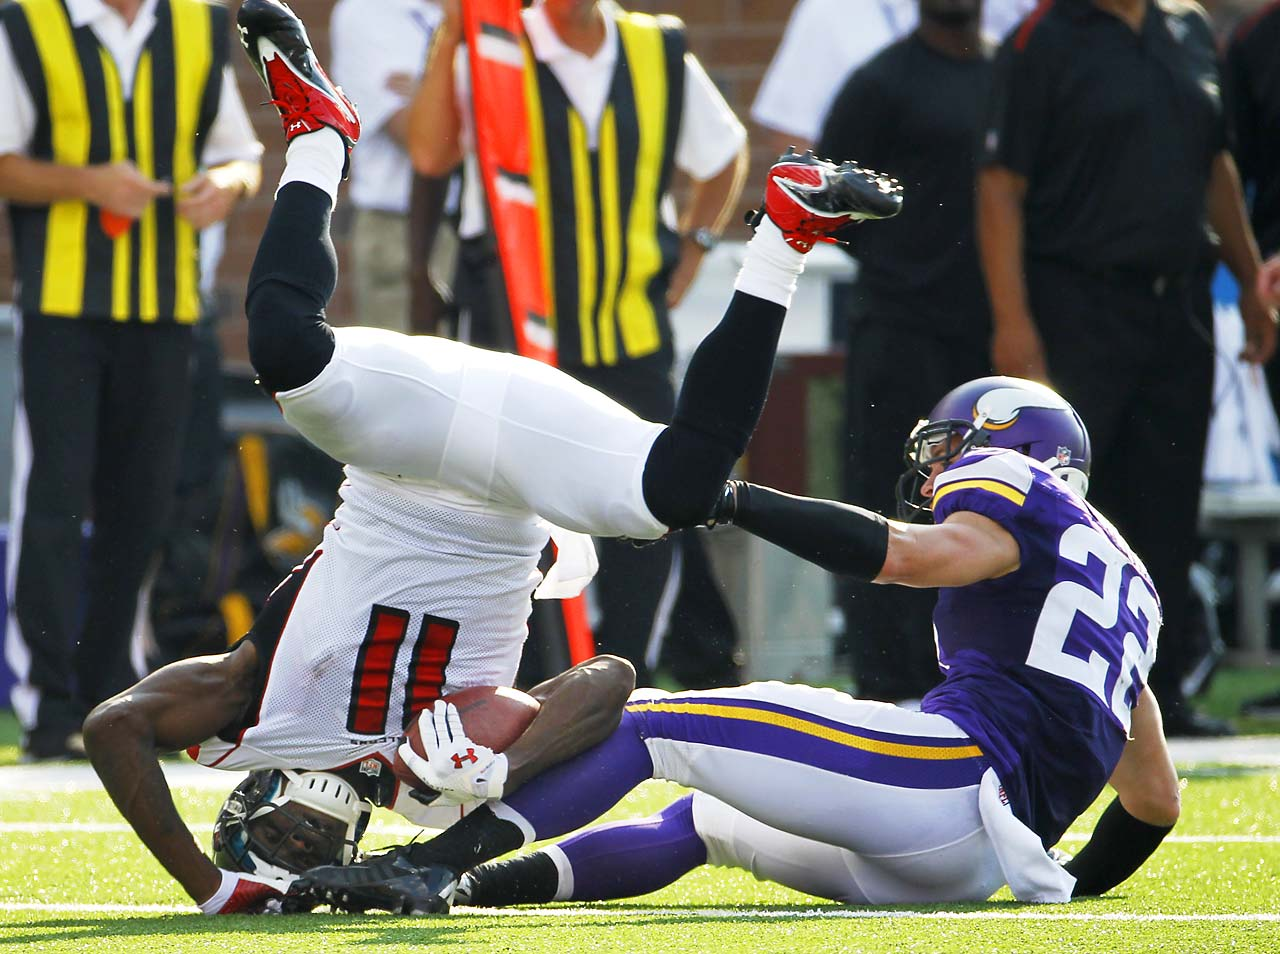 Atlanta wide receiver Julio Jones is tackled by Minnesota Vikings free safety Harrison Smith during the Falcons loss in Minneapolis.